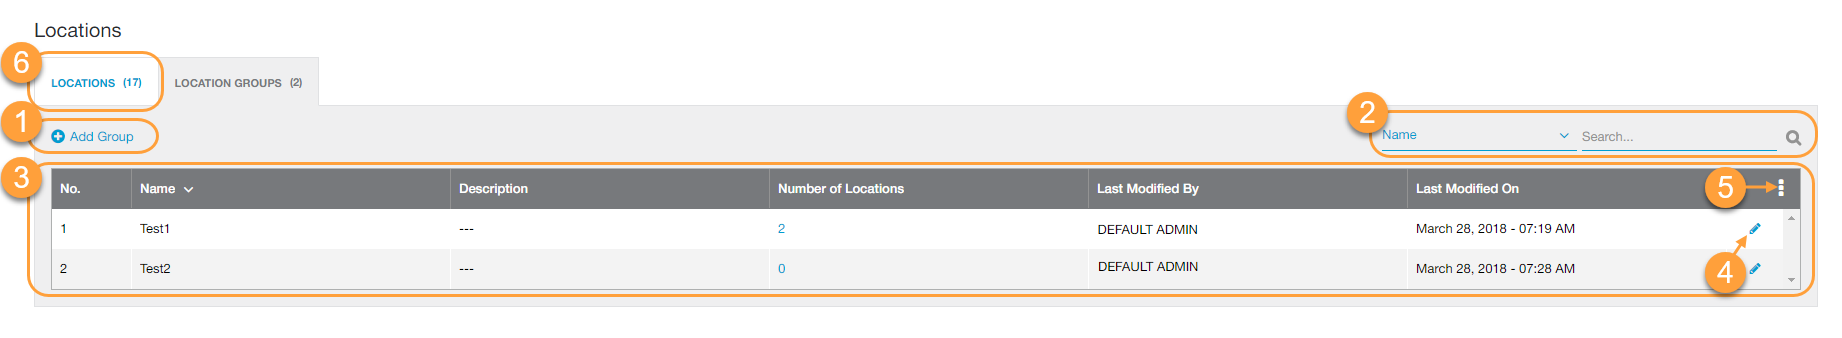 Location Groups Page within the Admin Portal